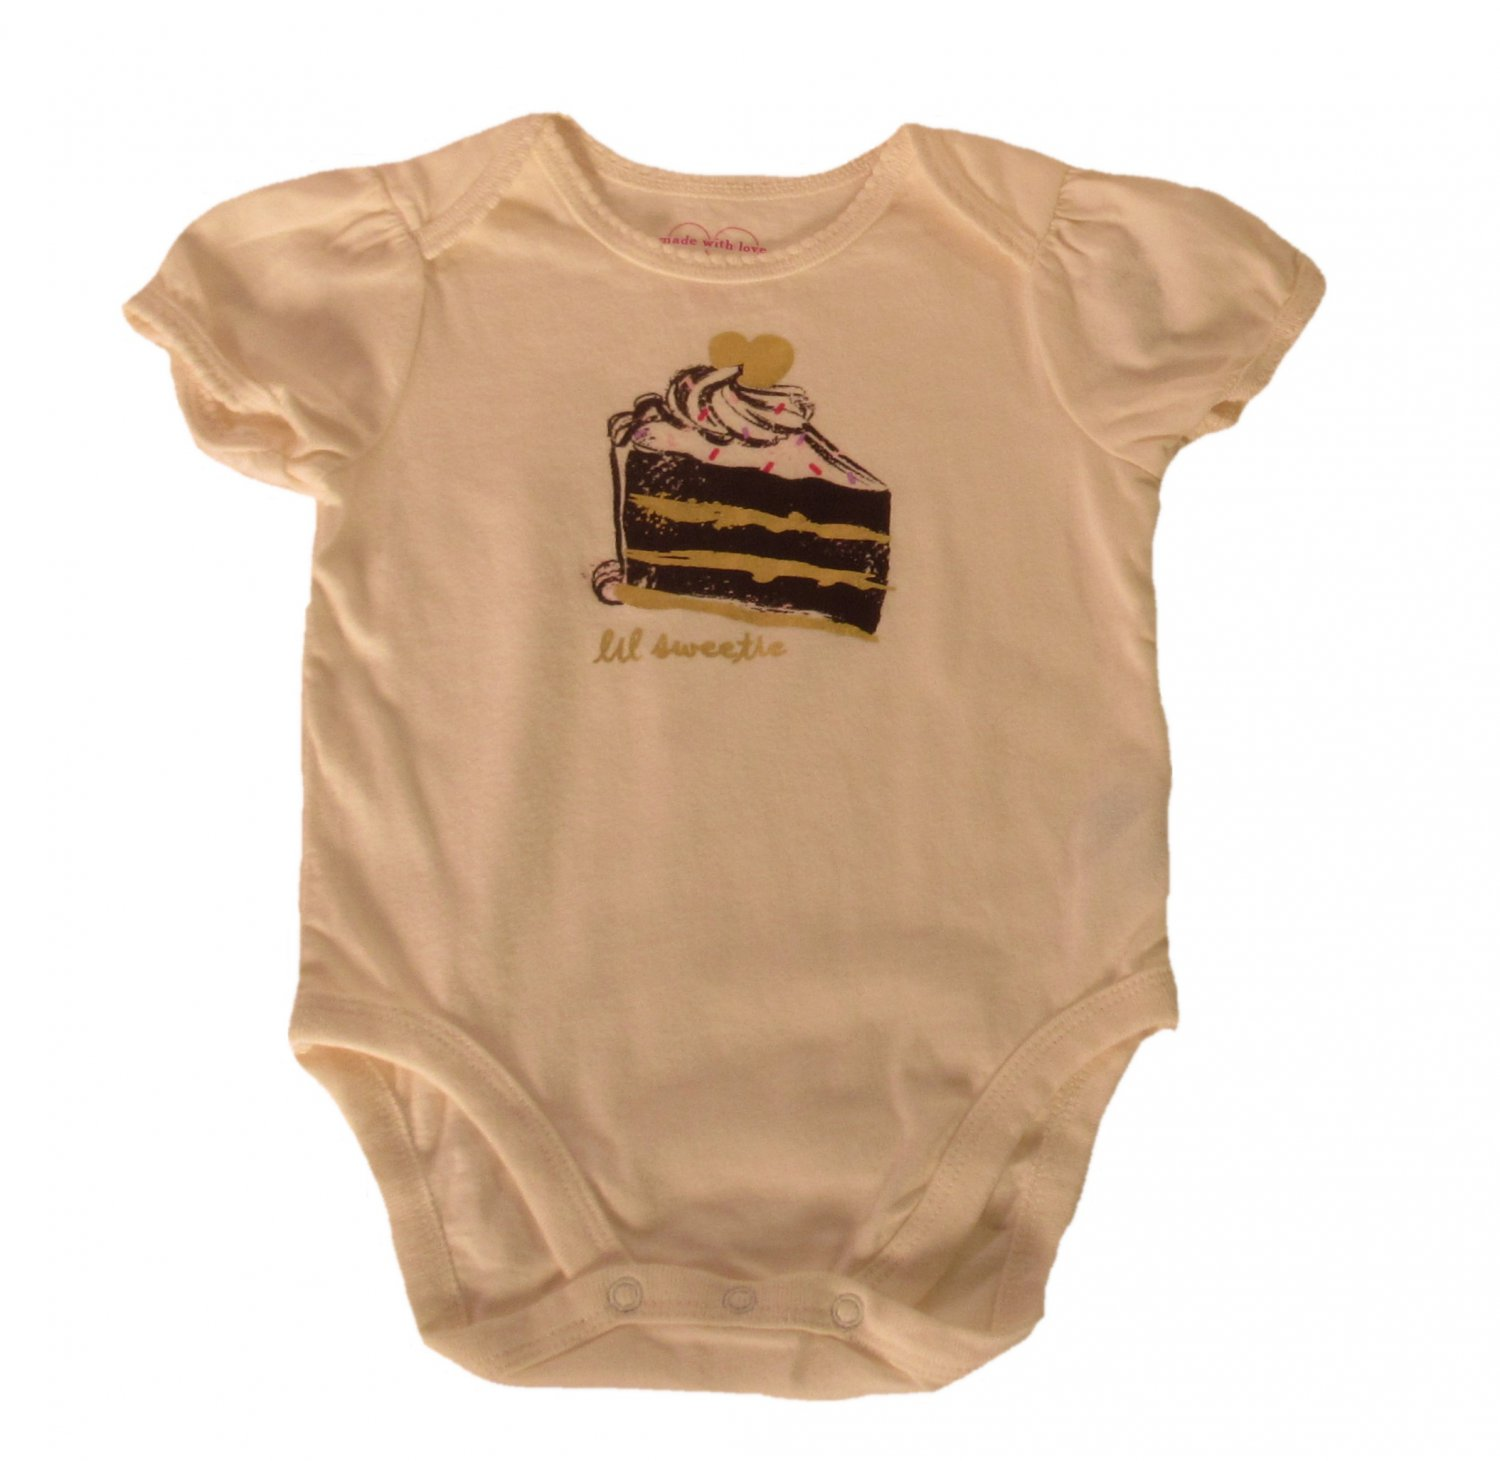 The Children's Place Infant Girls Ivory Lil Sweetie Short Sleeve Bodysuit 3 - 6 Months